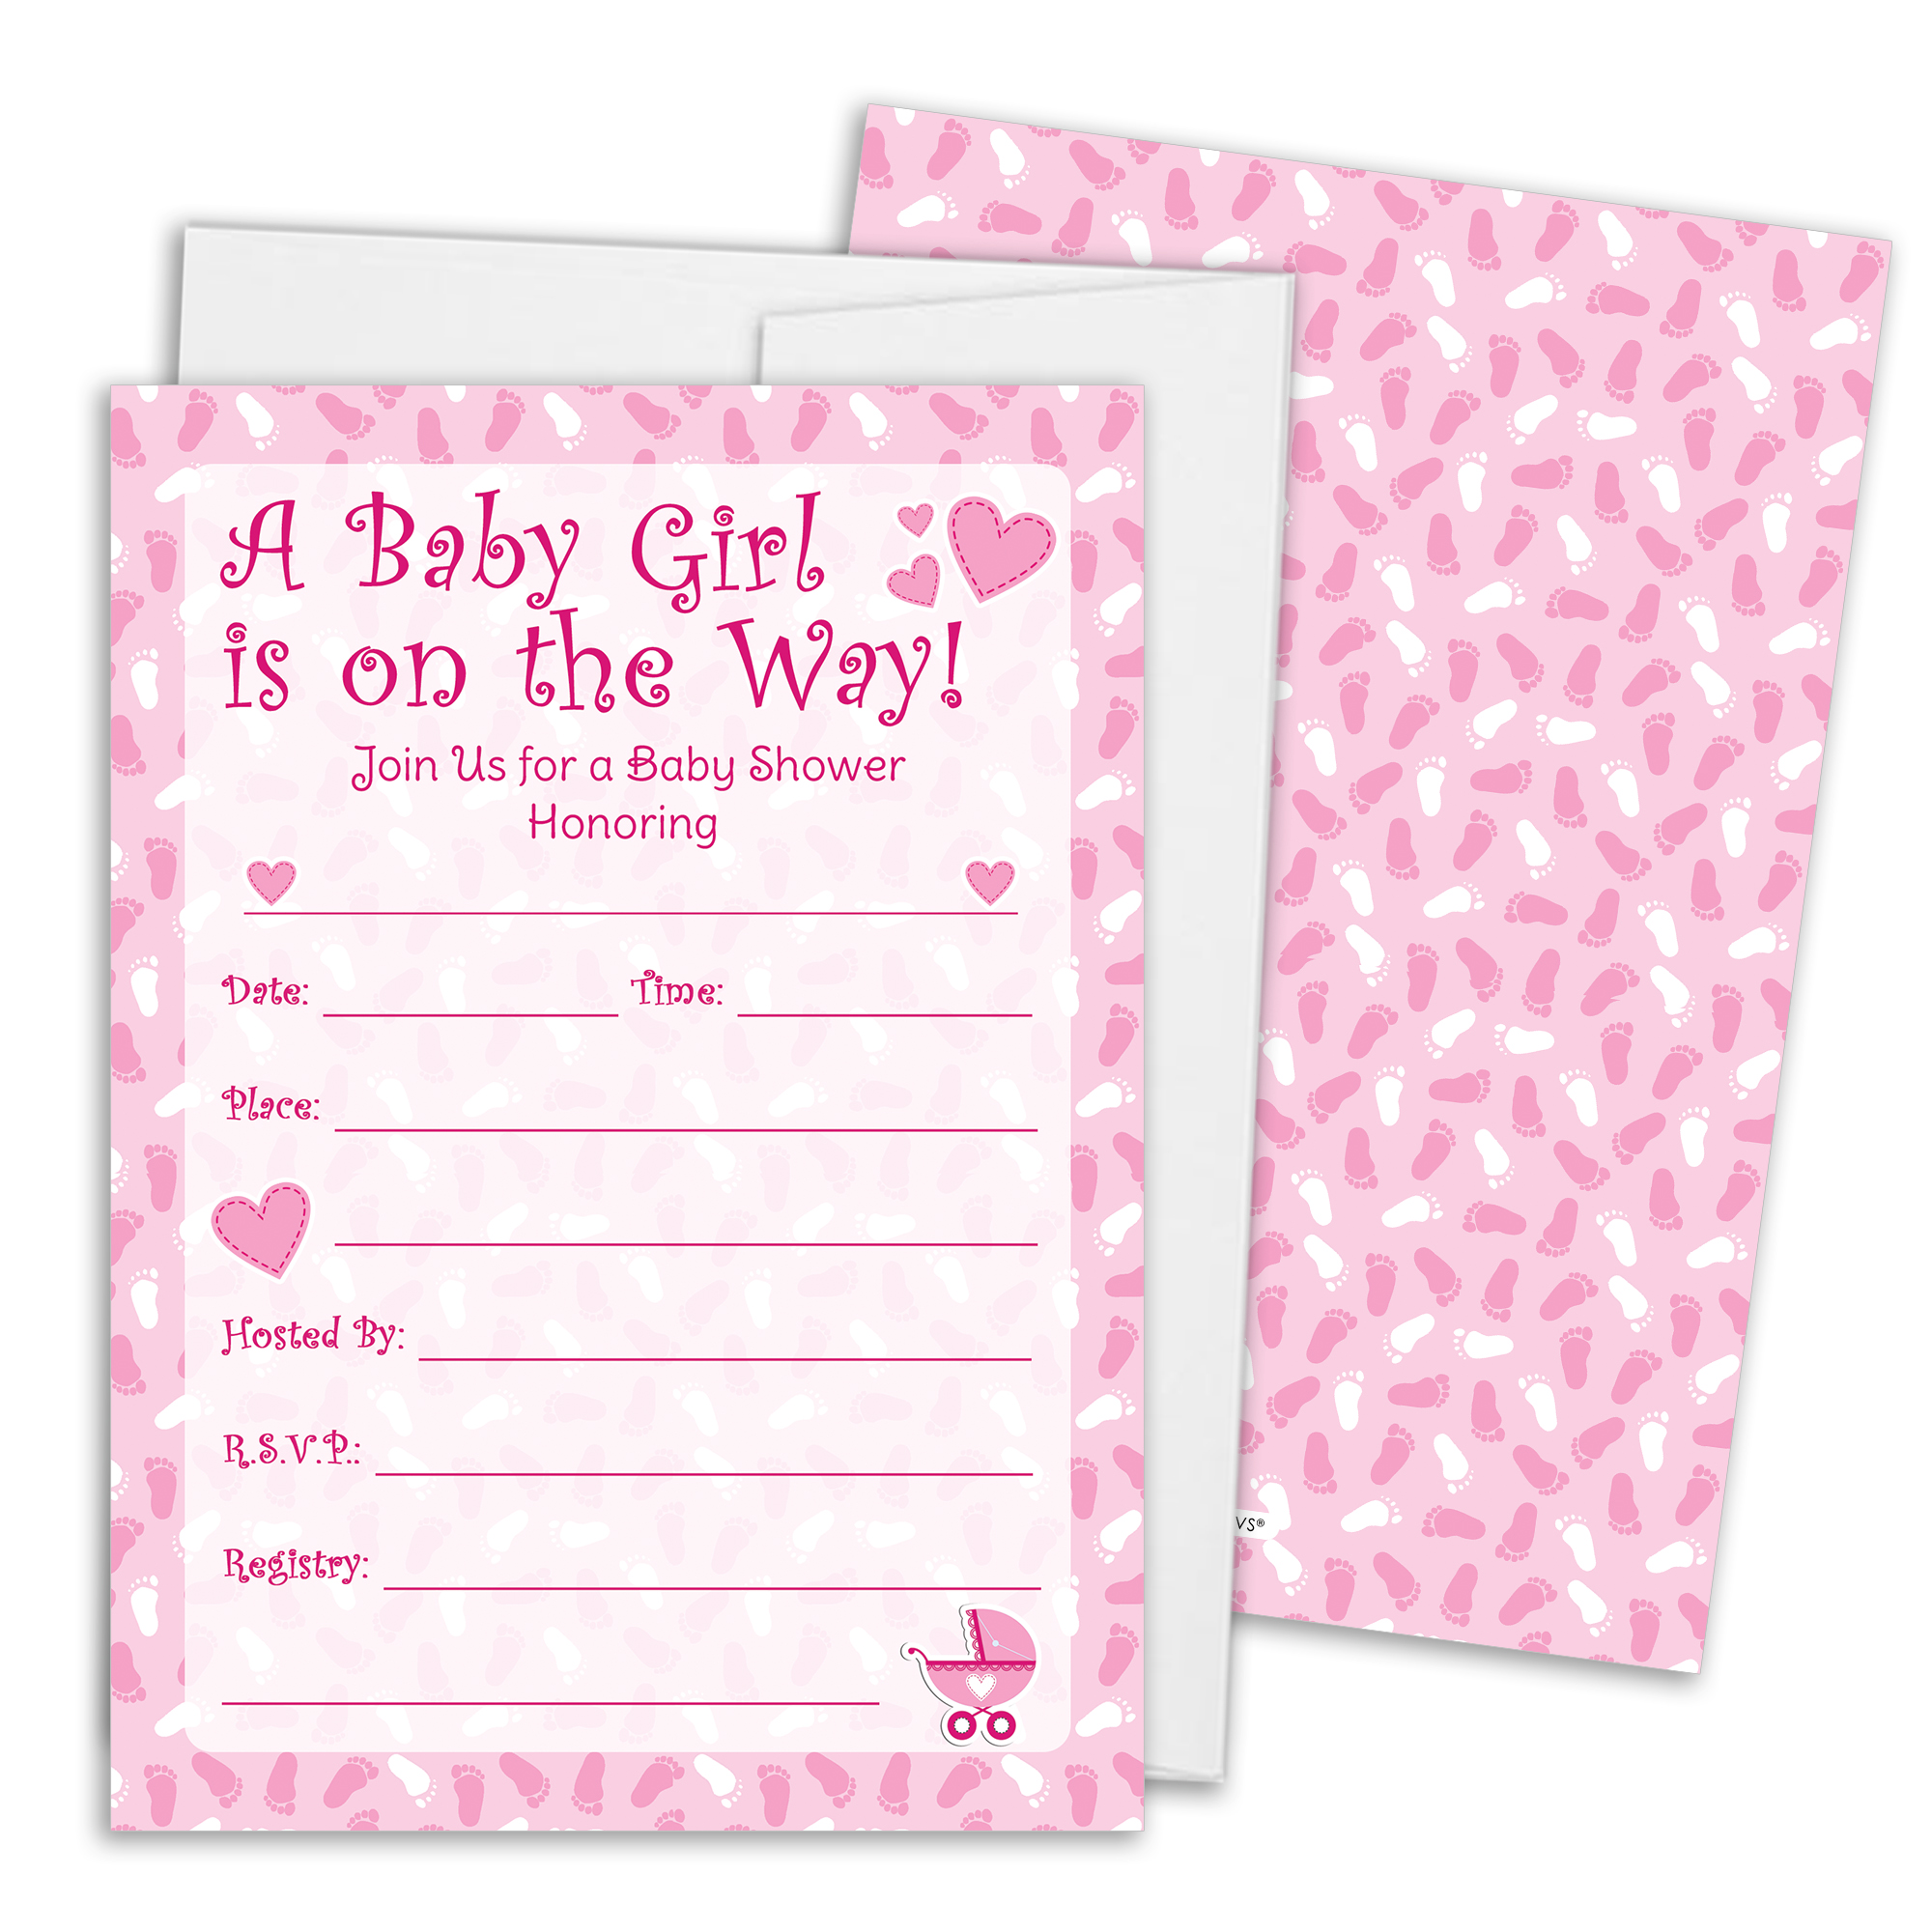 Pink Girl Baby Shower Invitations With White Envelopes, 25 Count. Price